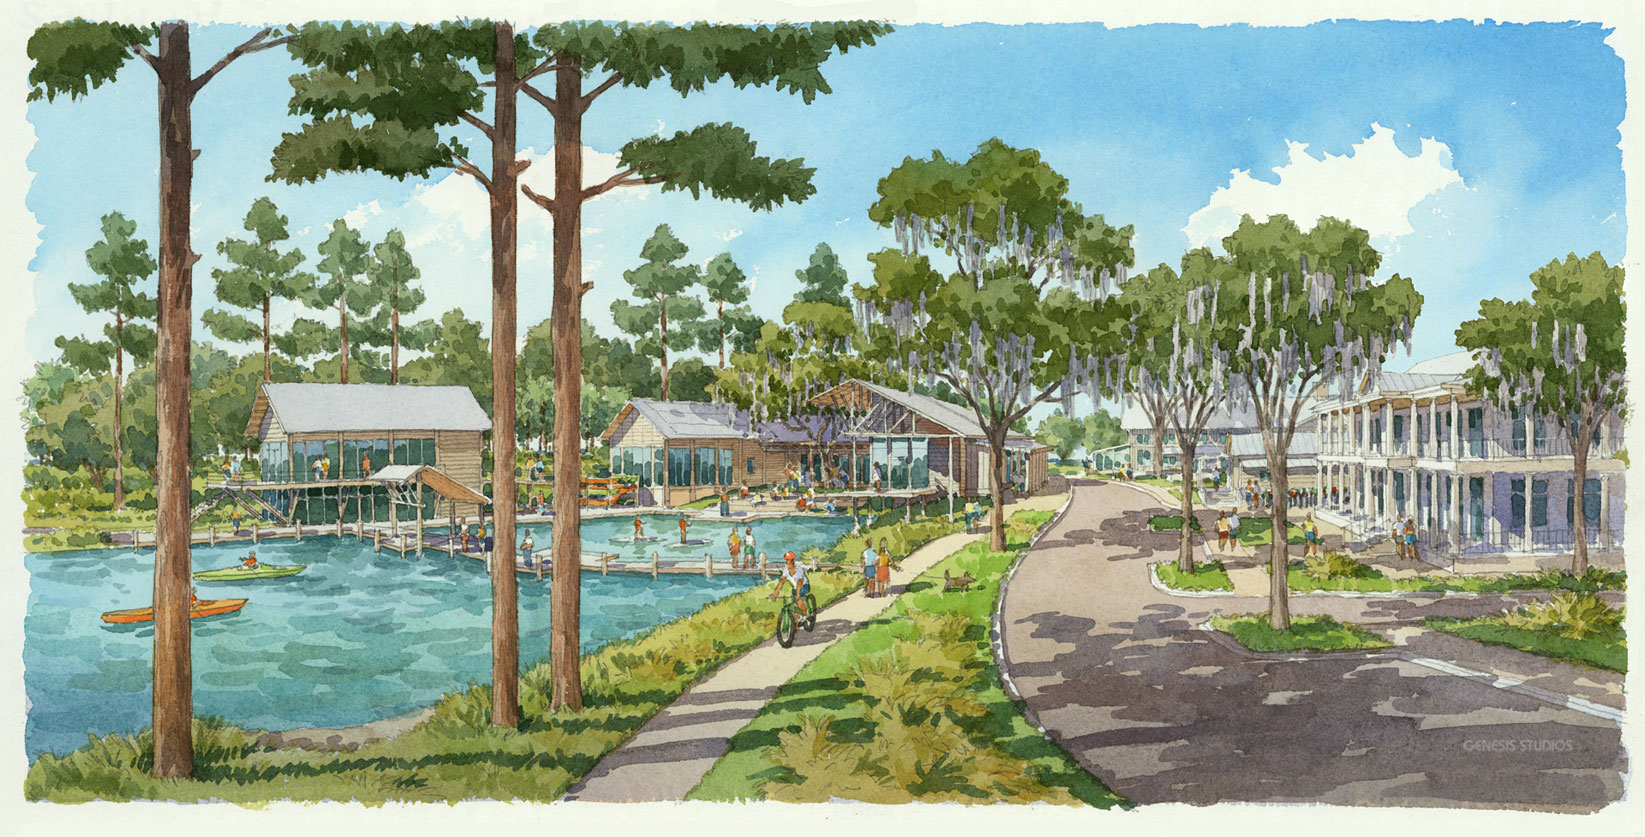 515004 Watercolor Architectural Rendering of Palmetto Bluff Lake for Crescent Communities